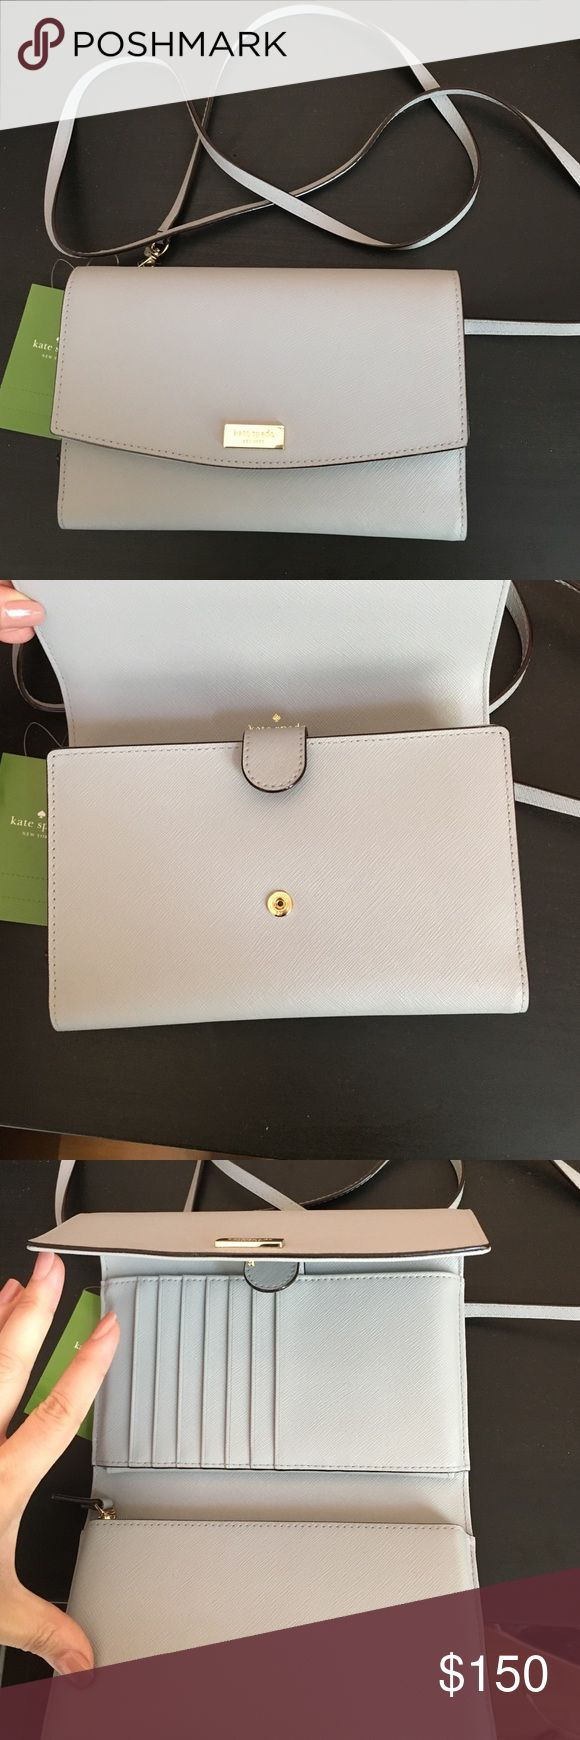 Kate Spade crossbody wallet Many compartments, zip compartment, card slots, removable strap kate spade Bags